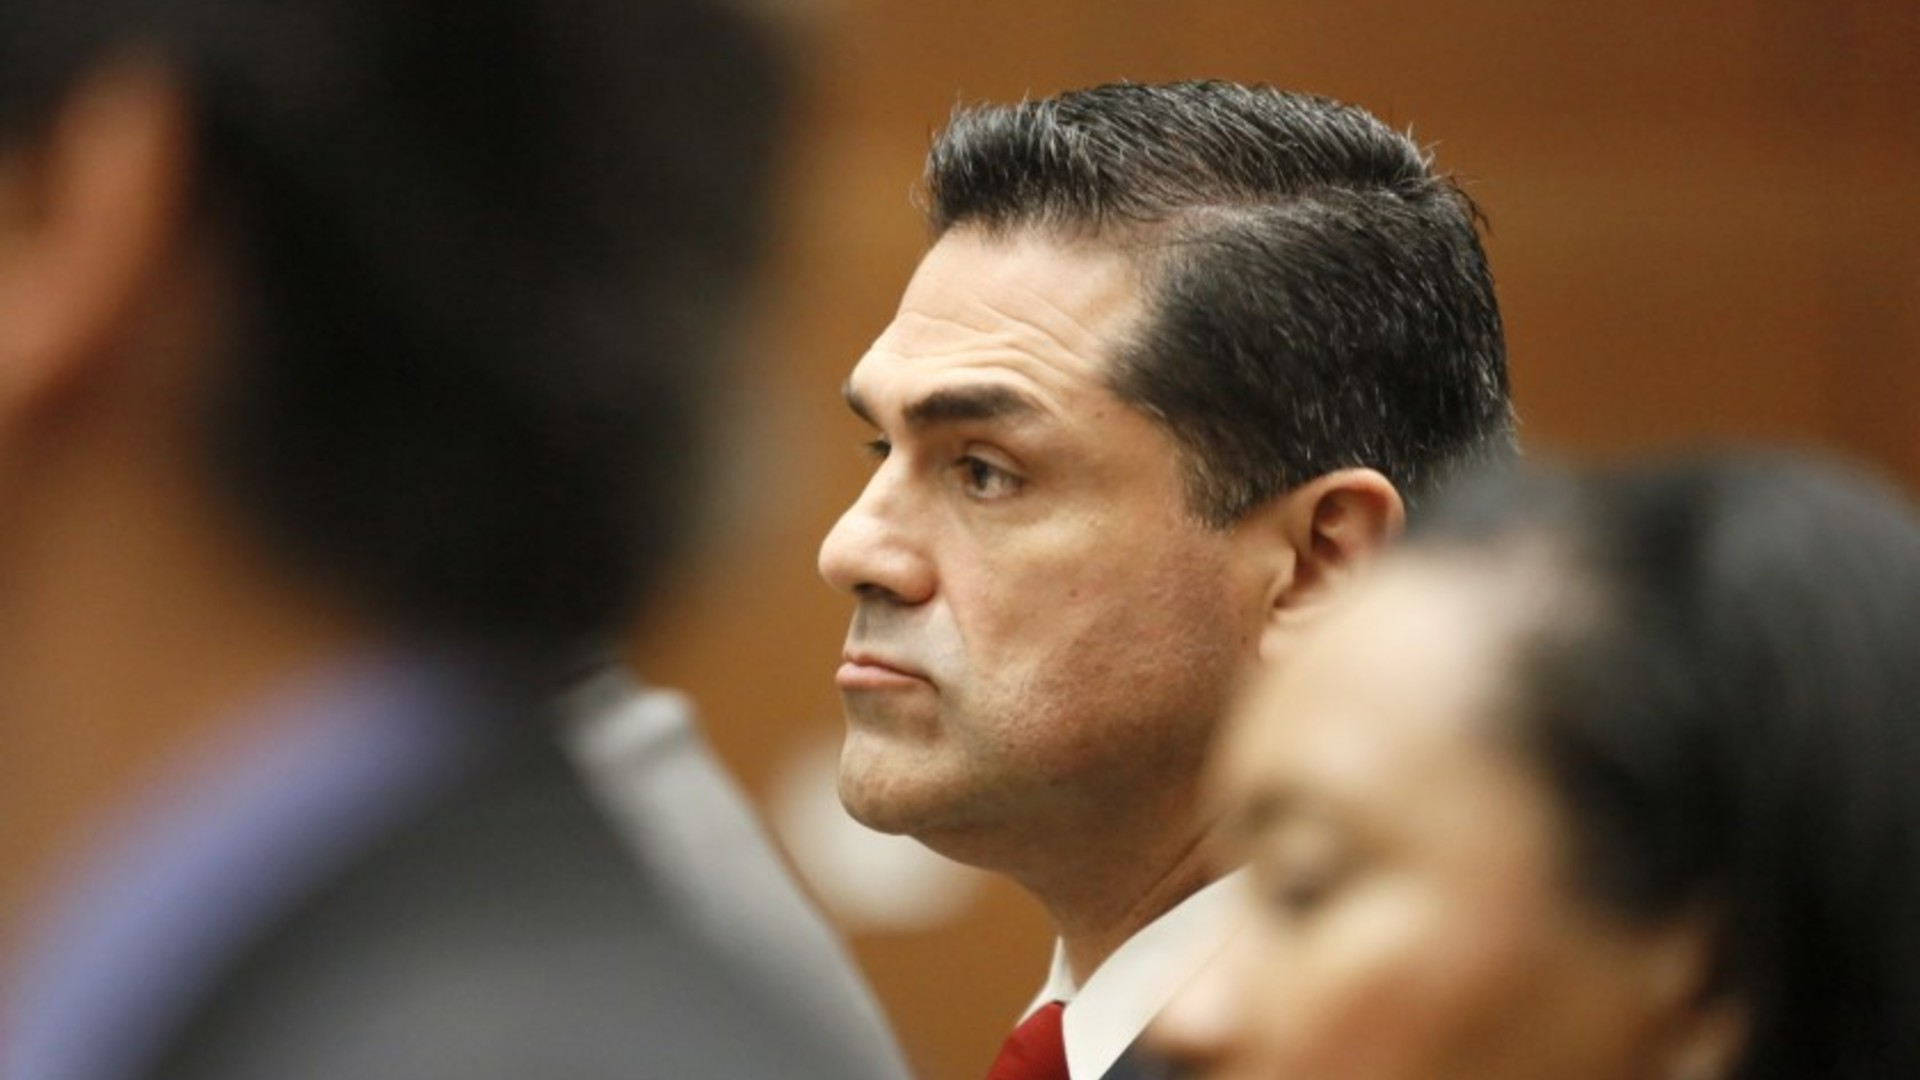 Former L.A. County Assessor John Noguez appears in a downtown Los Angeles courtroom.(Irfan Khan/Los Angeles Times)